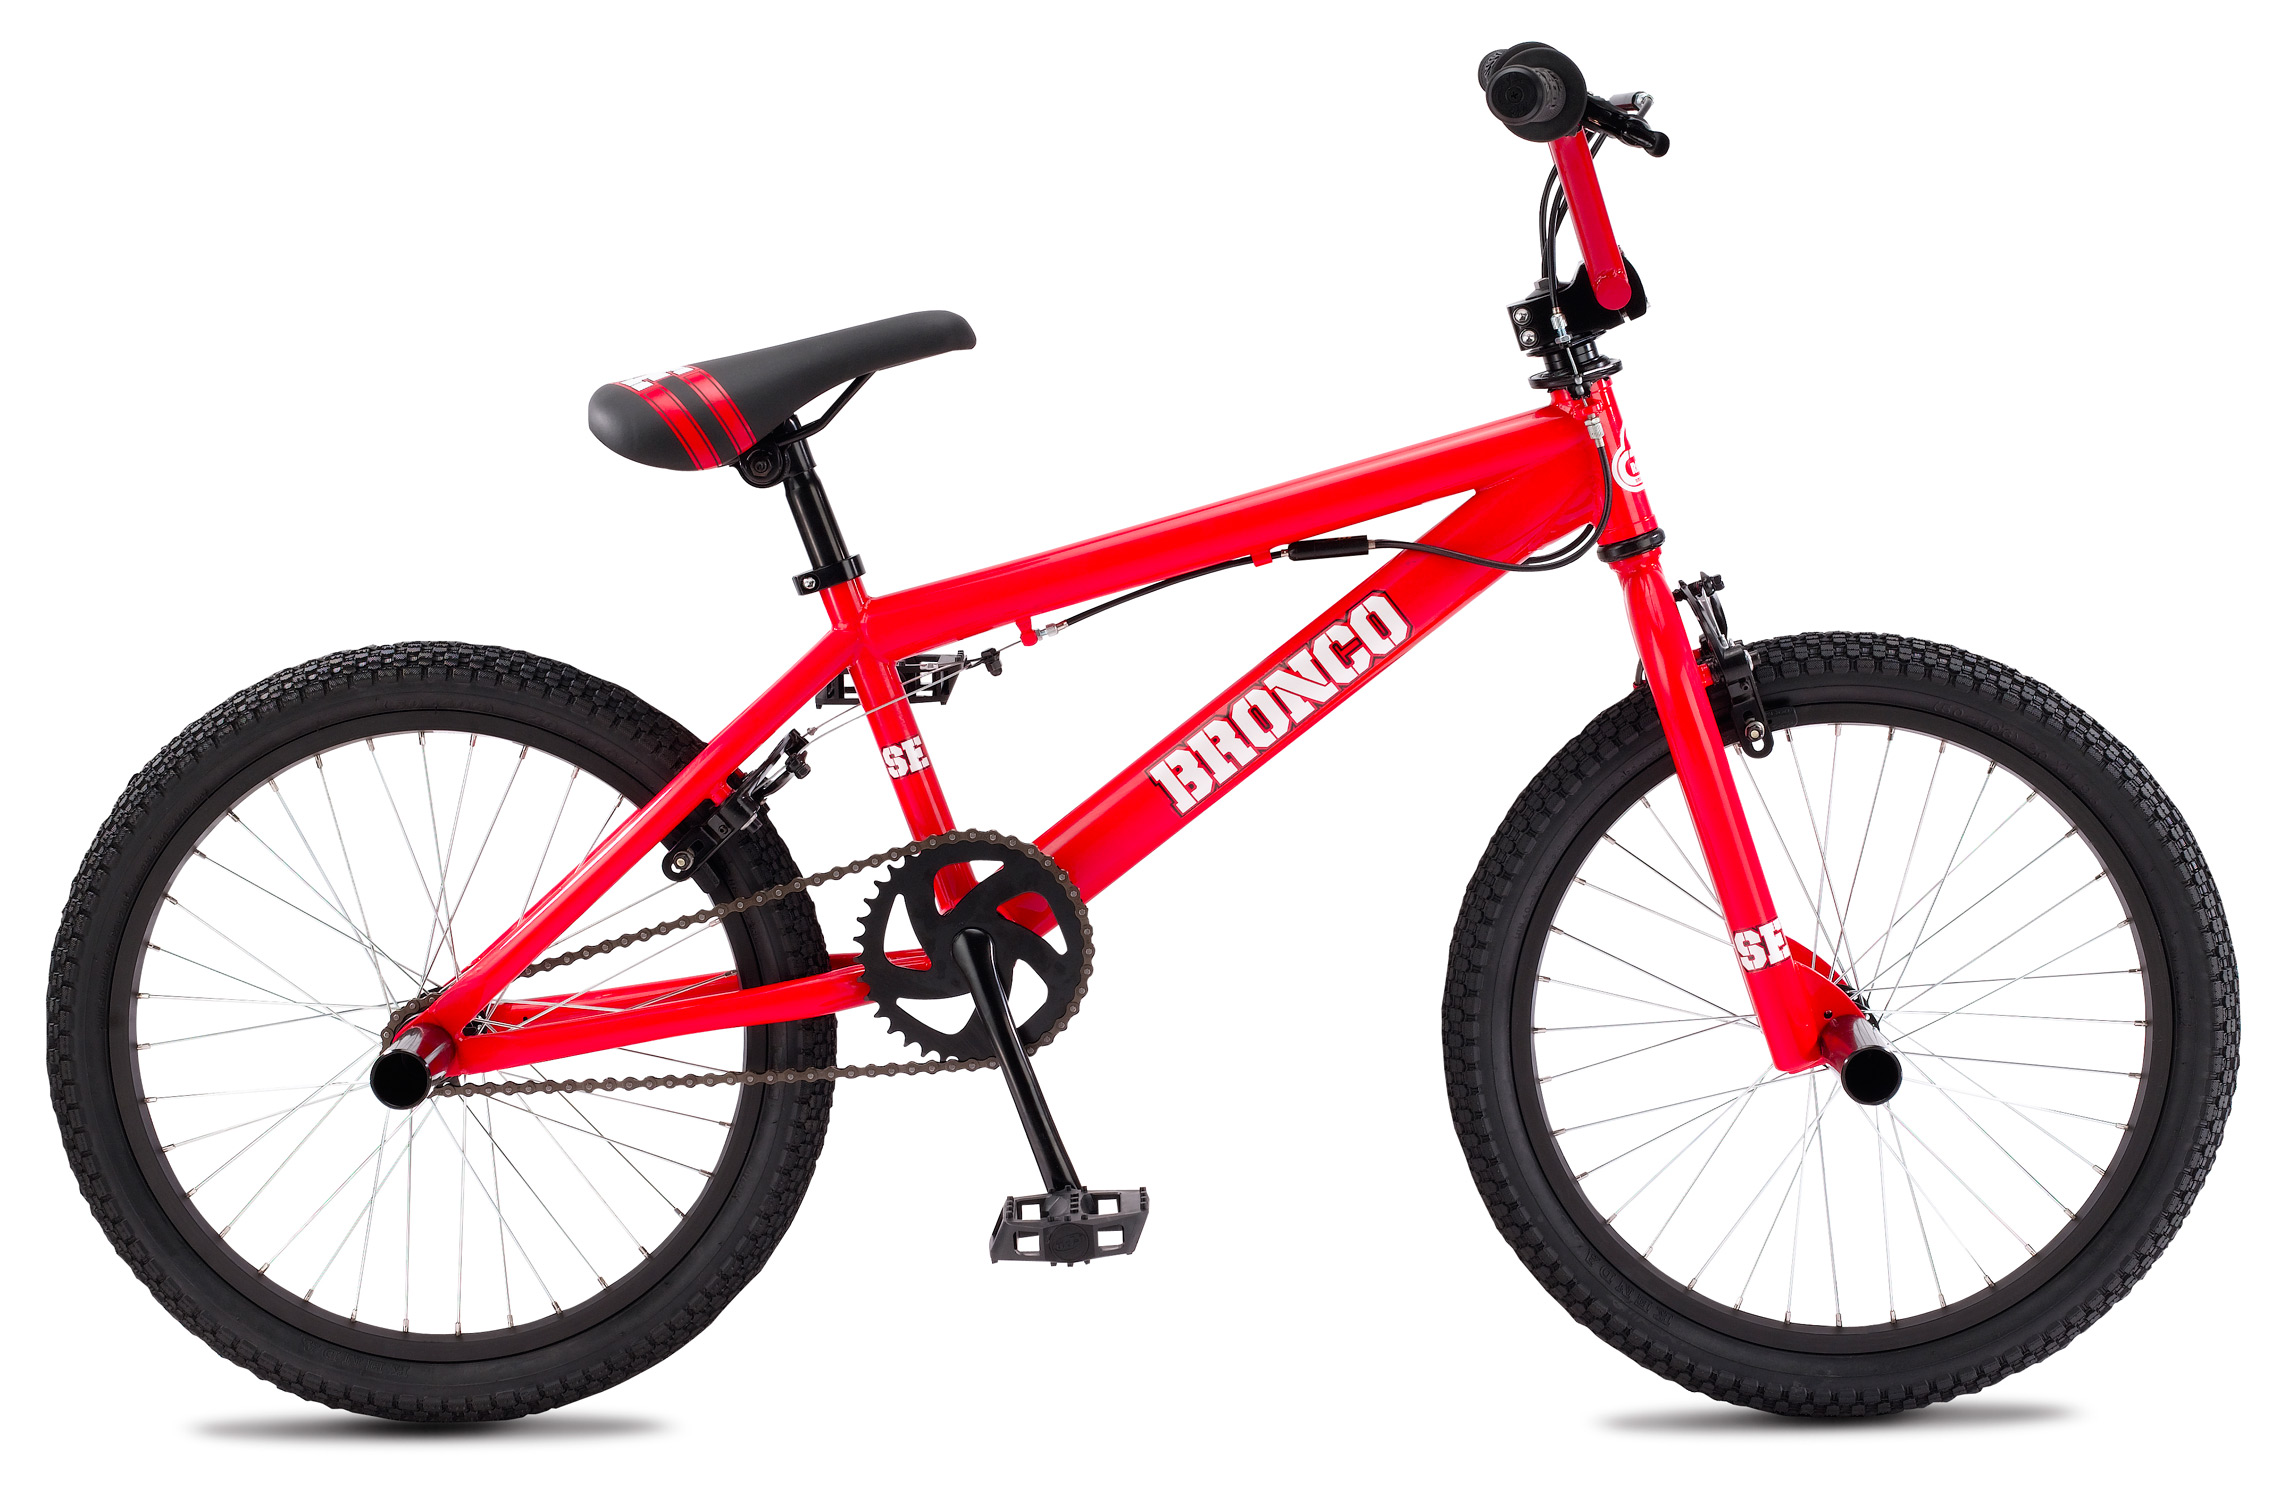 BMX SE Freestyle Bronco BMX Bike 20in - $199.95